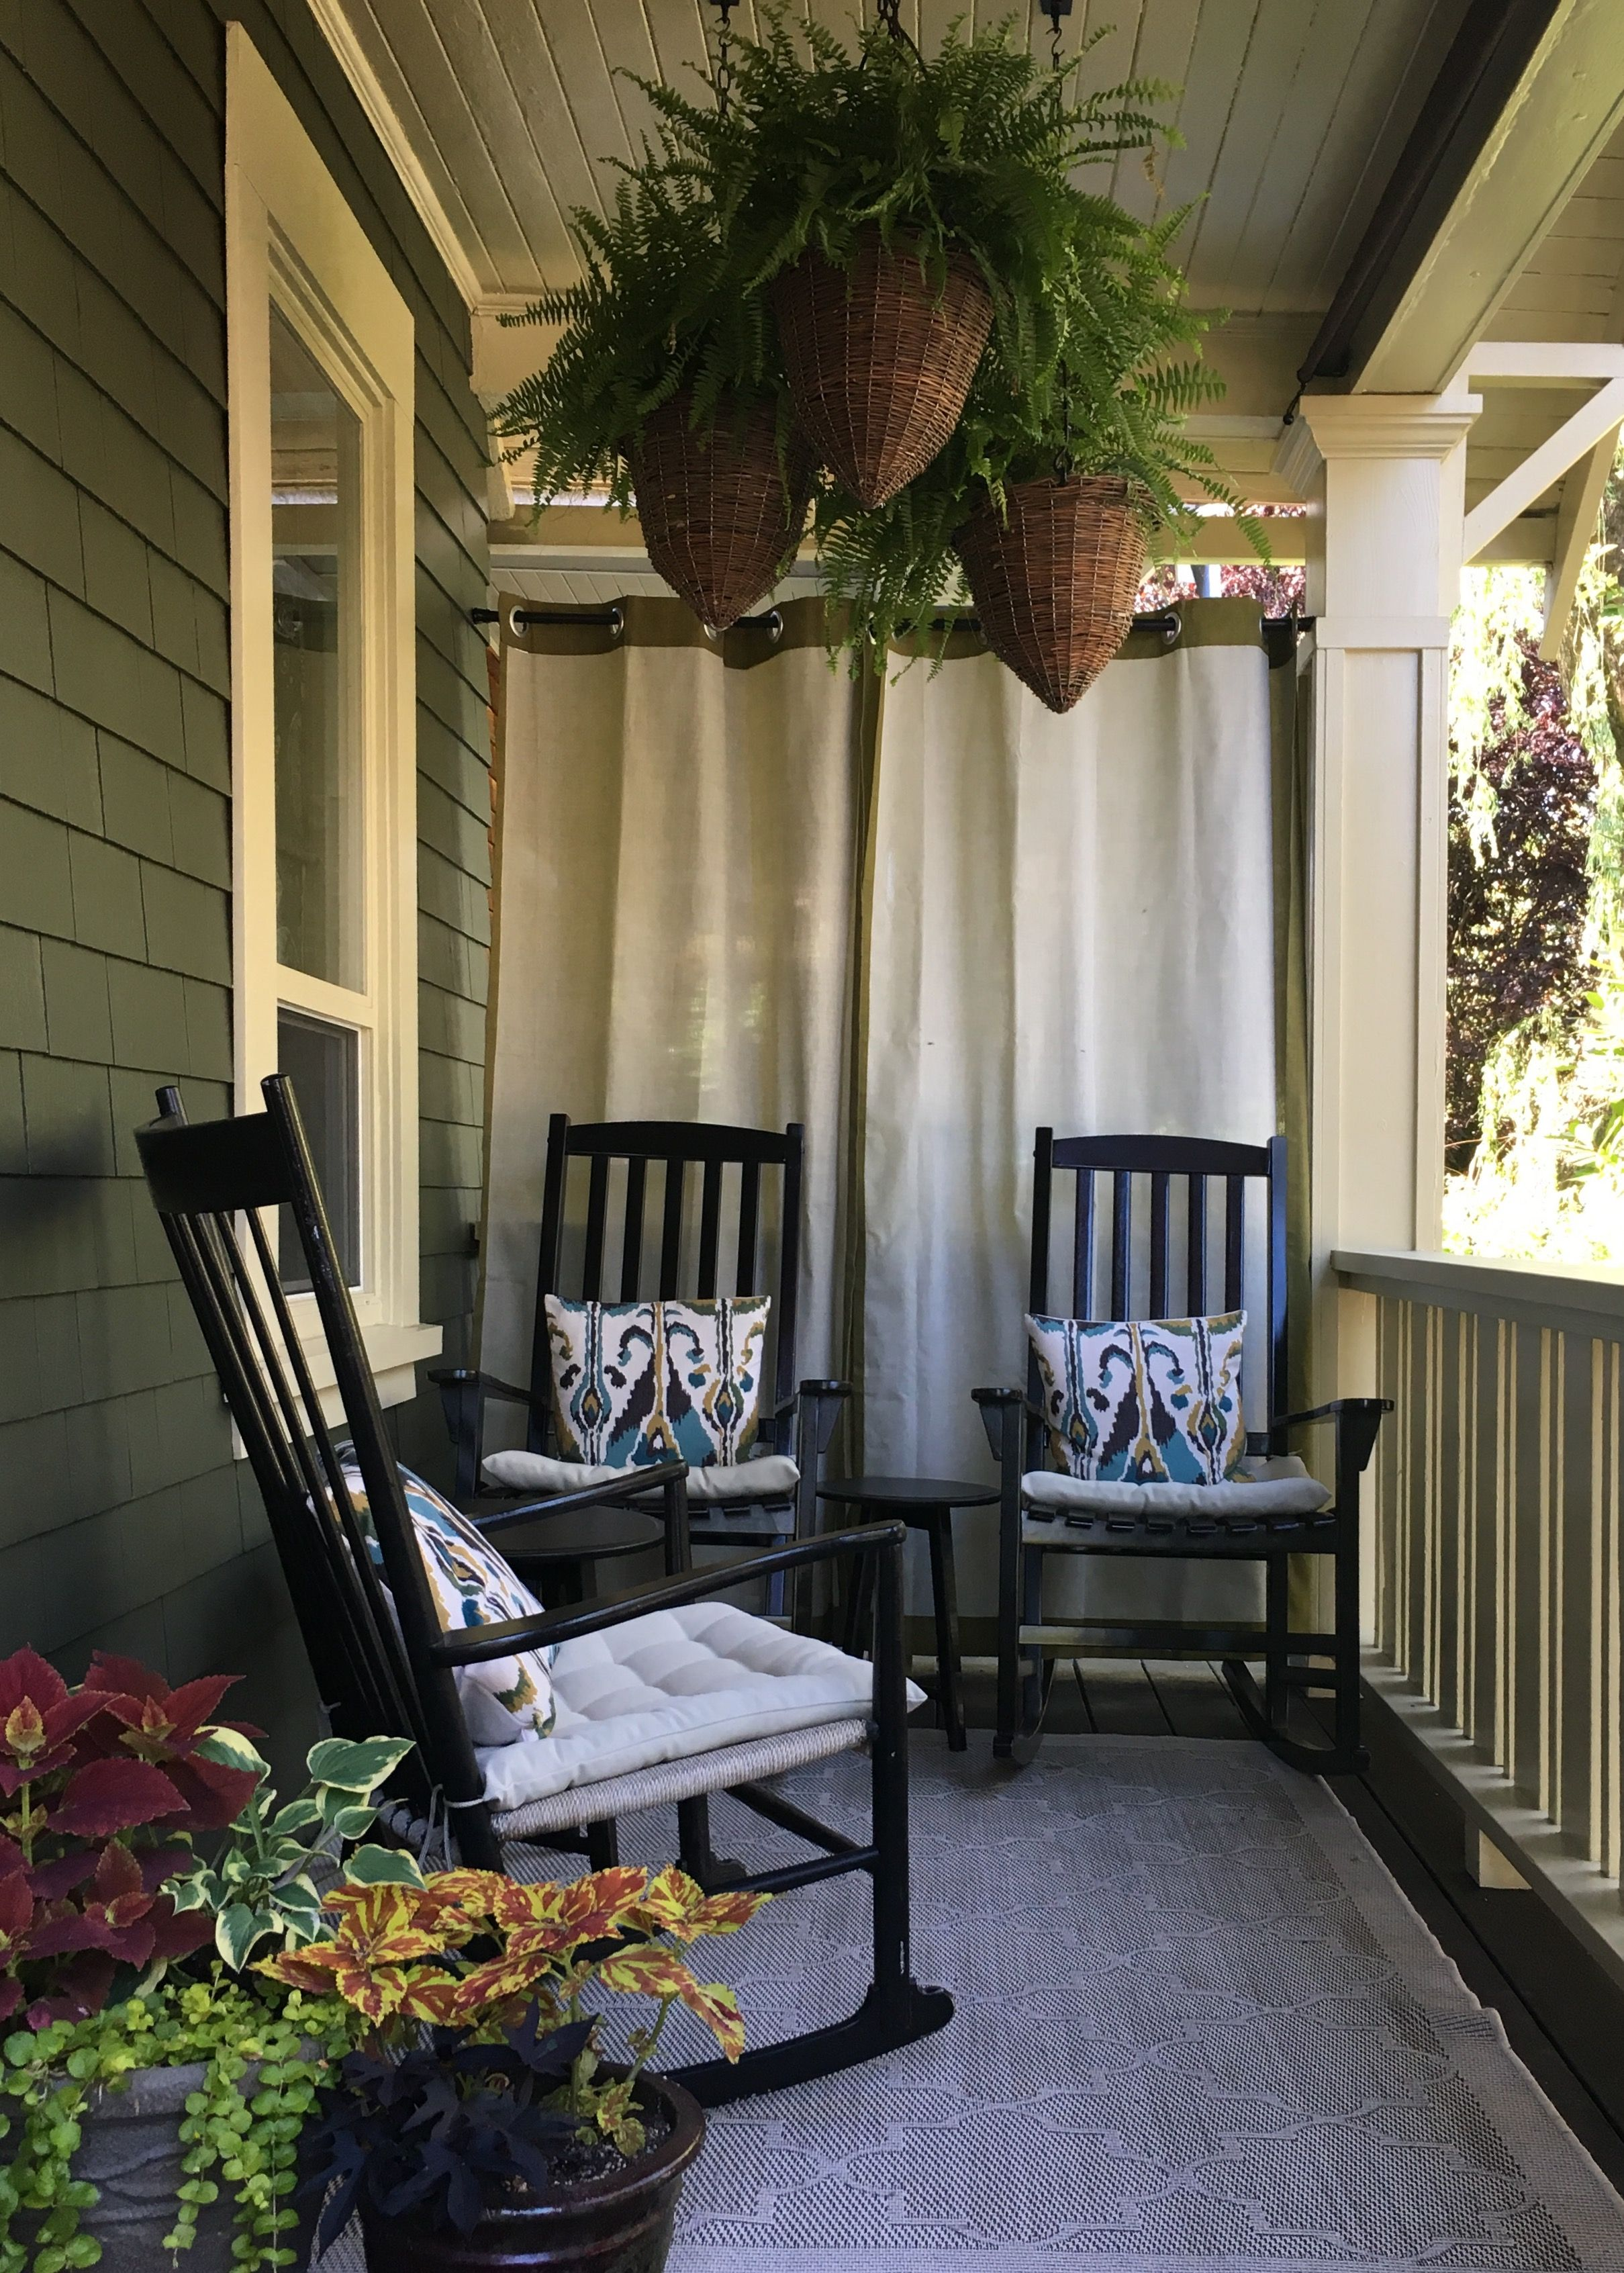 front furniture astonishing with on brown rocking saddle porch and backrest wicker stained wooden chairs todetop